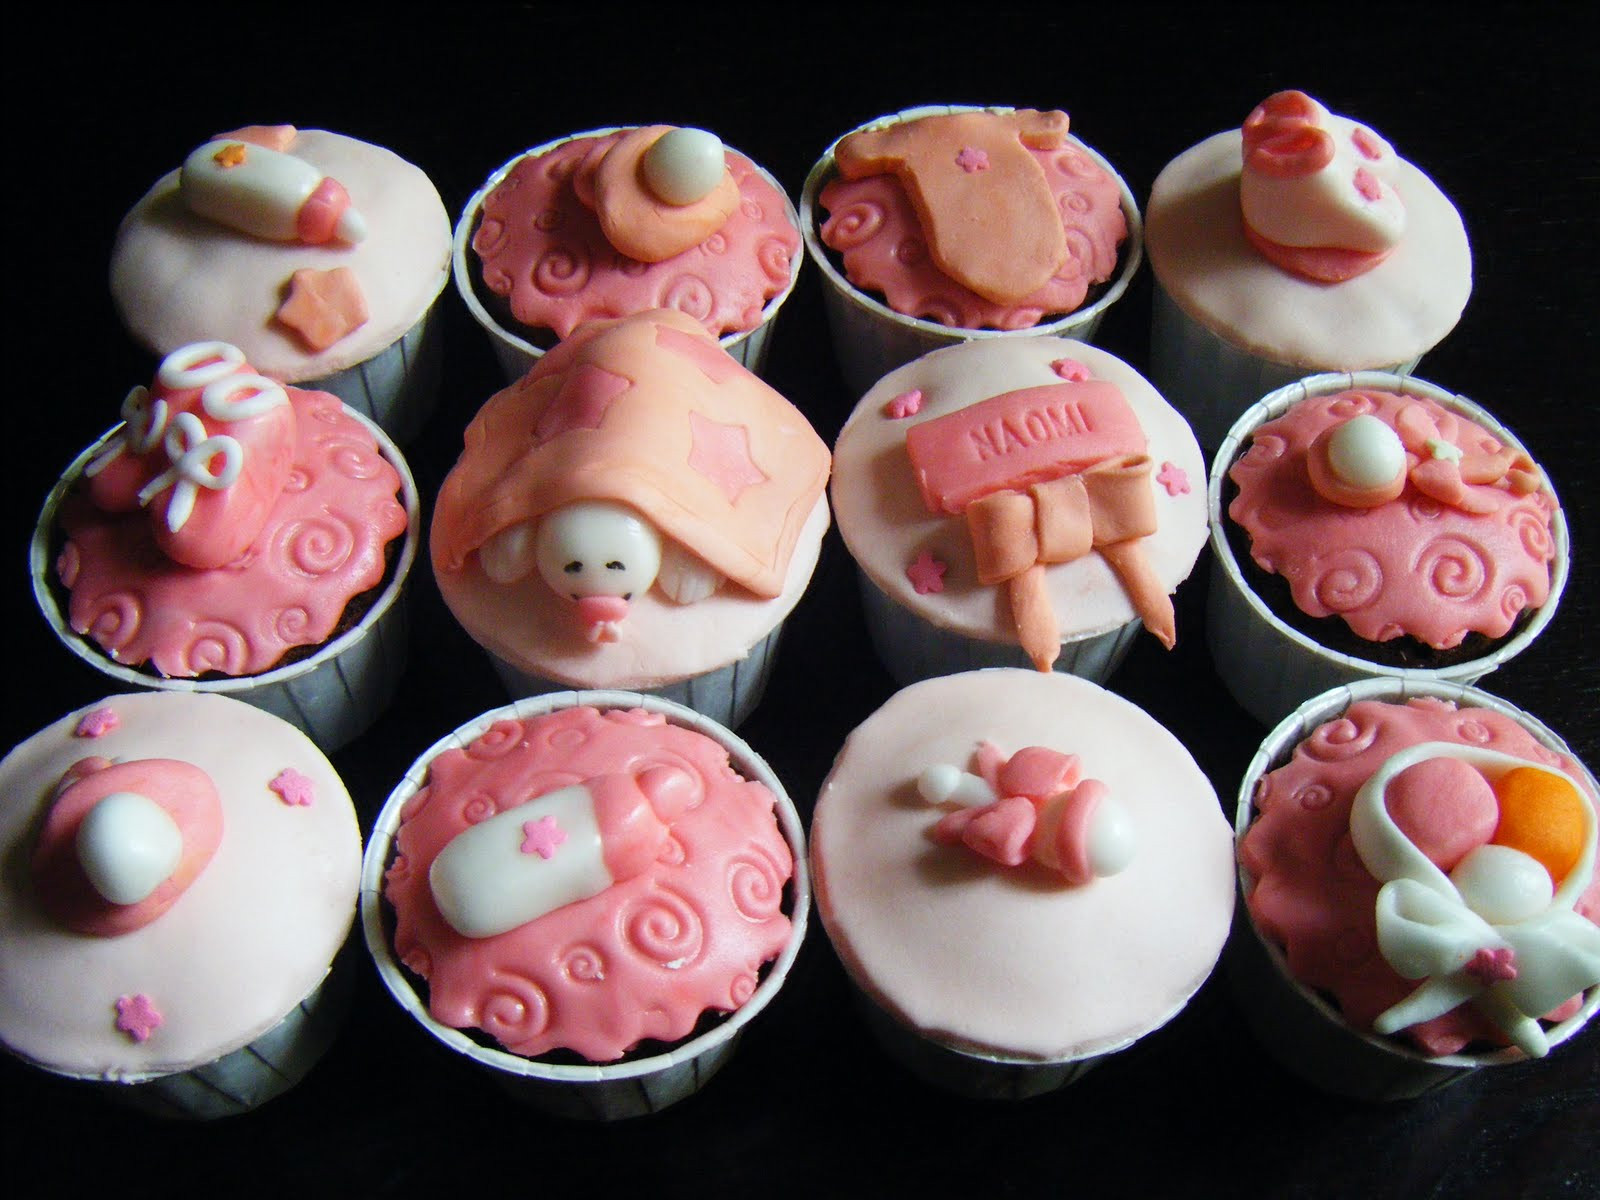 Girl Baby Shower Cupcakes  70 Baby Shower Cakes and Cupcakes Ideas